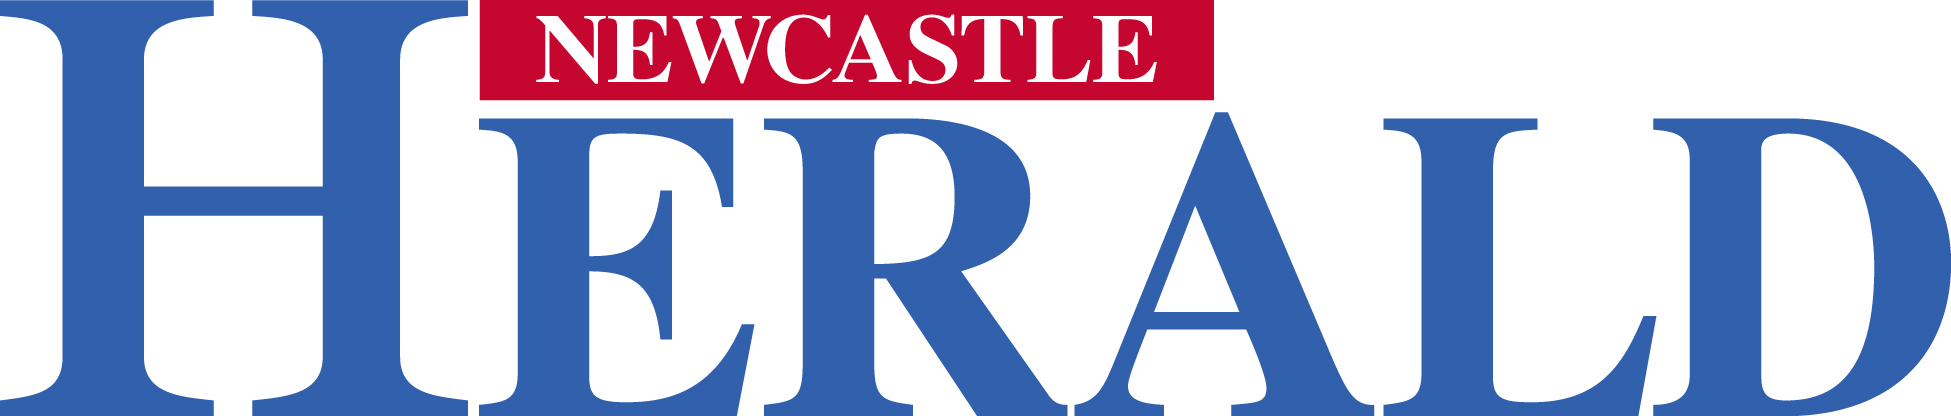 Newcastle Herald Logo